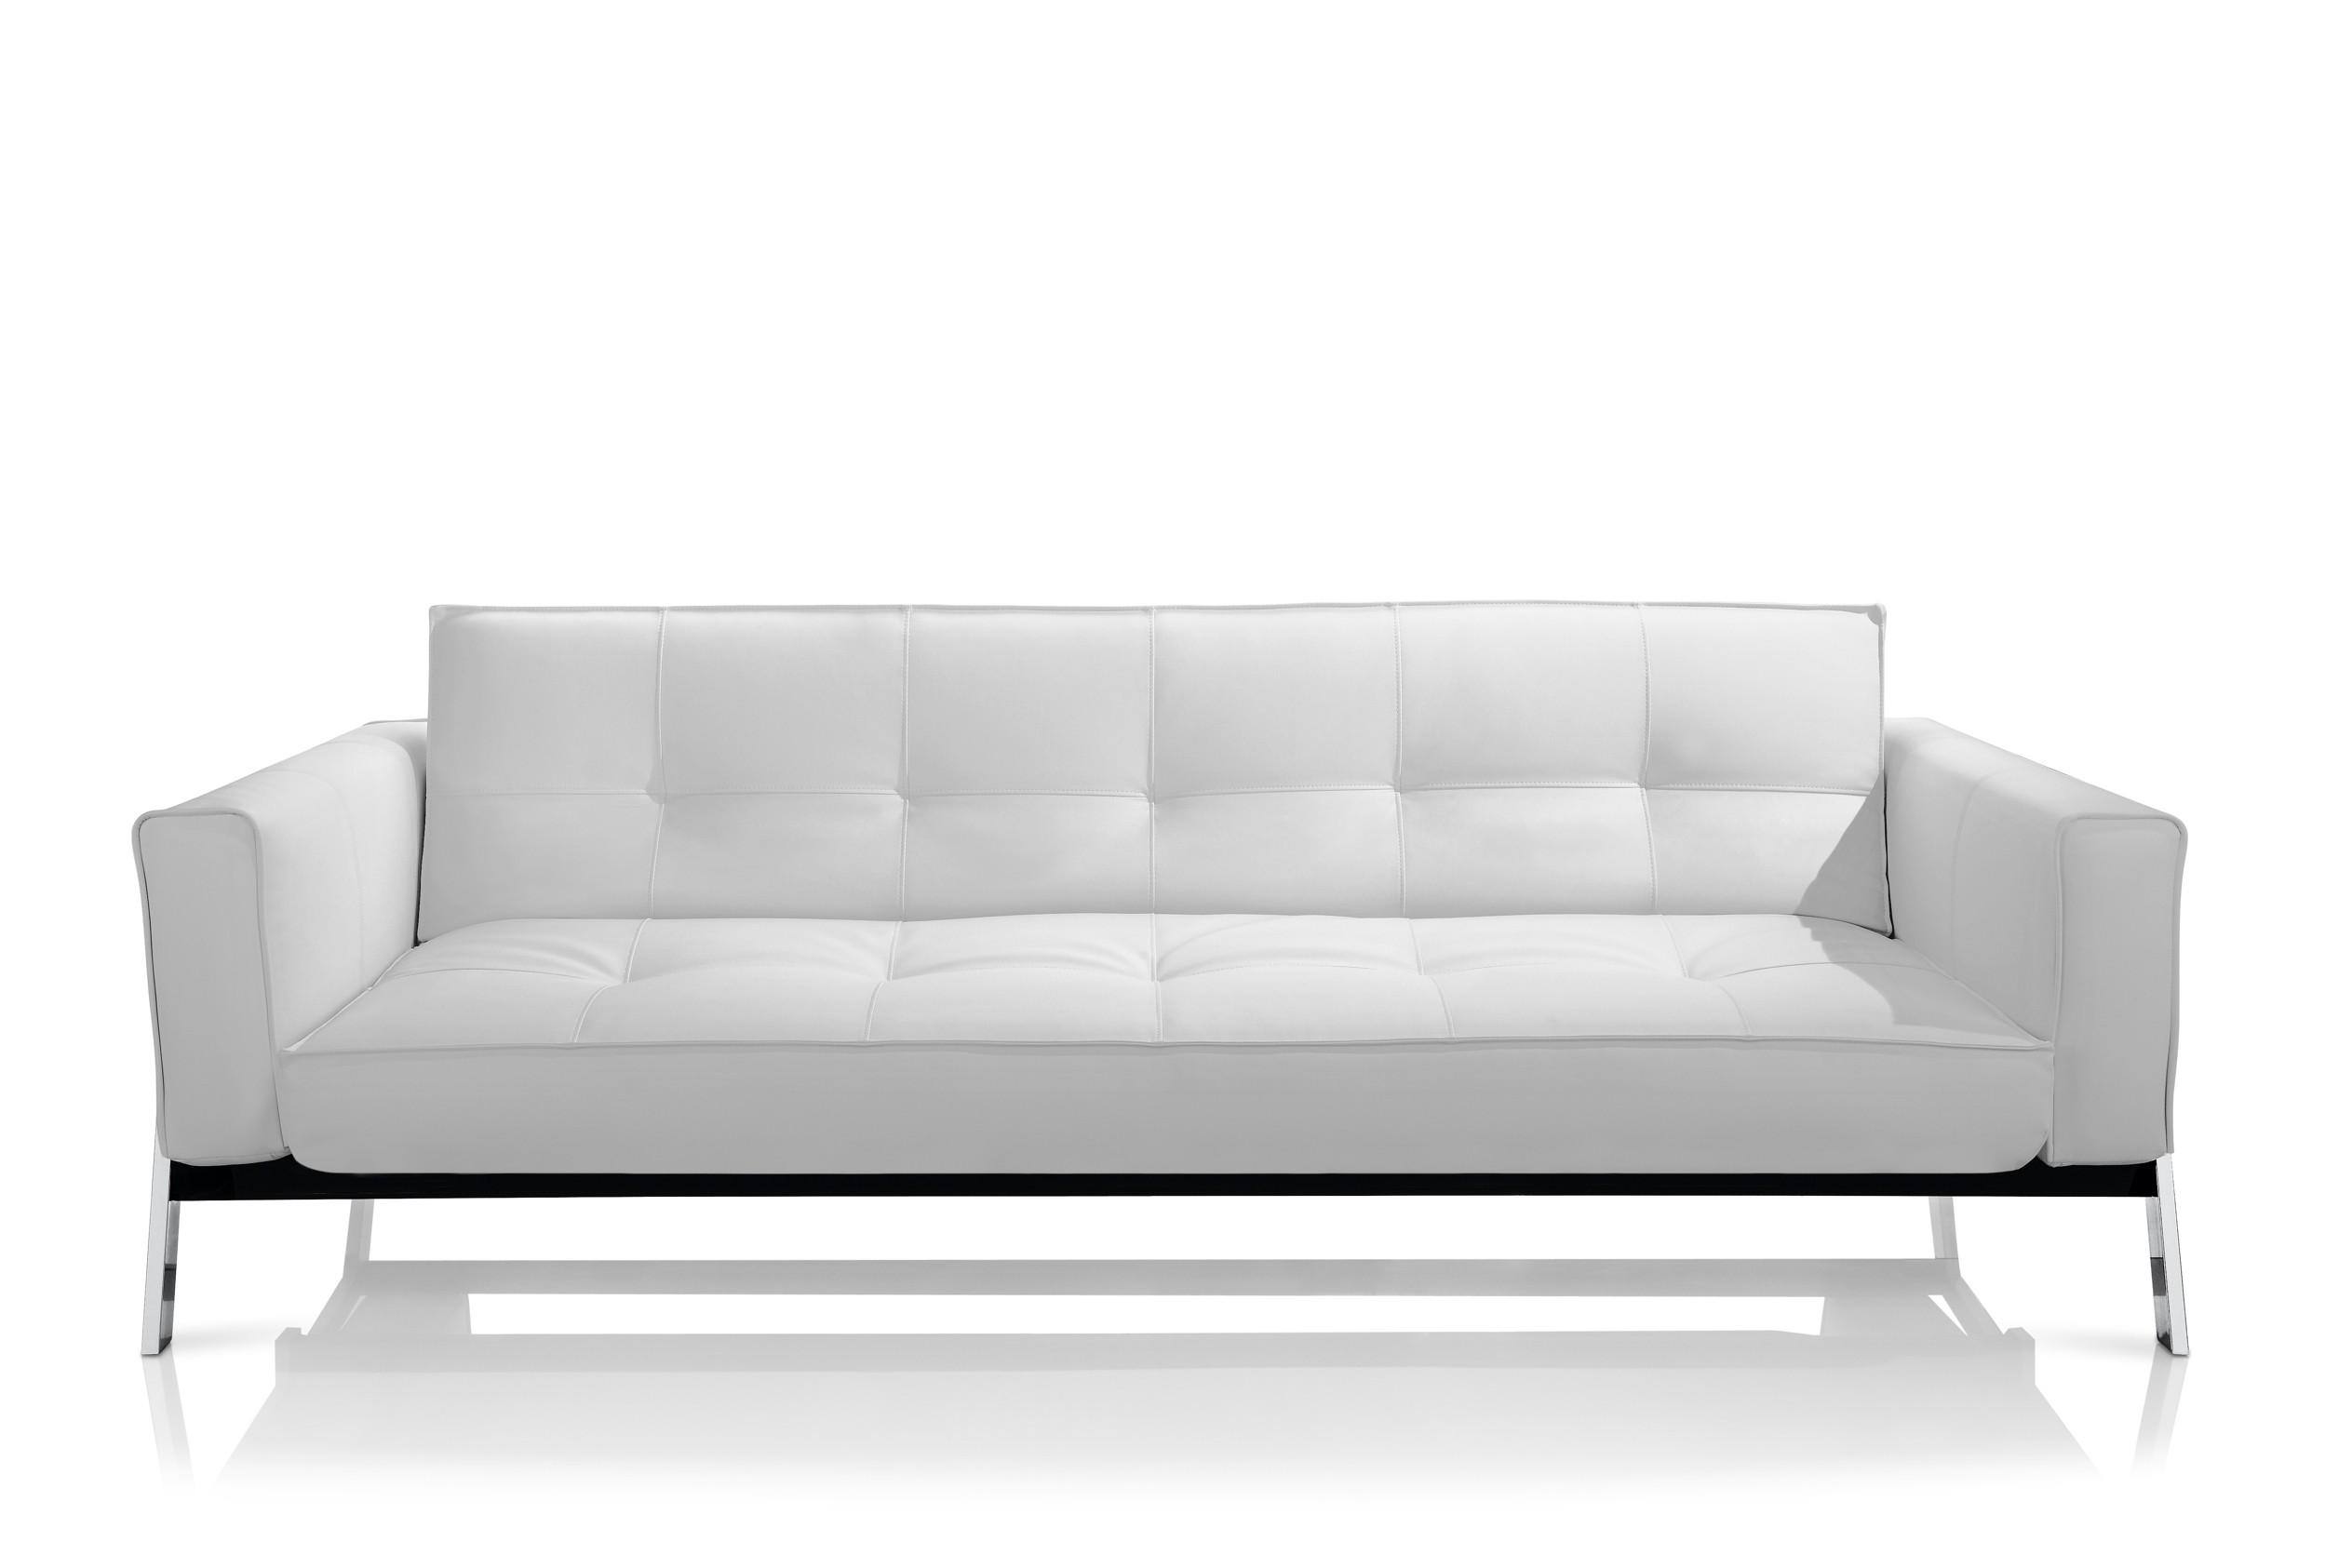 New White Fabric Sofa 30 Sofas And Couches Set With White Fabric Sofa Throughout White Fabric Sofas (View 6 of 20)